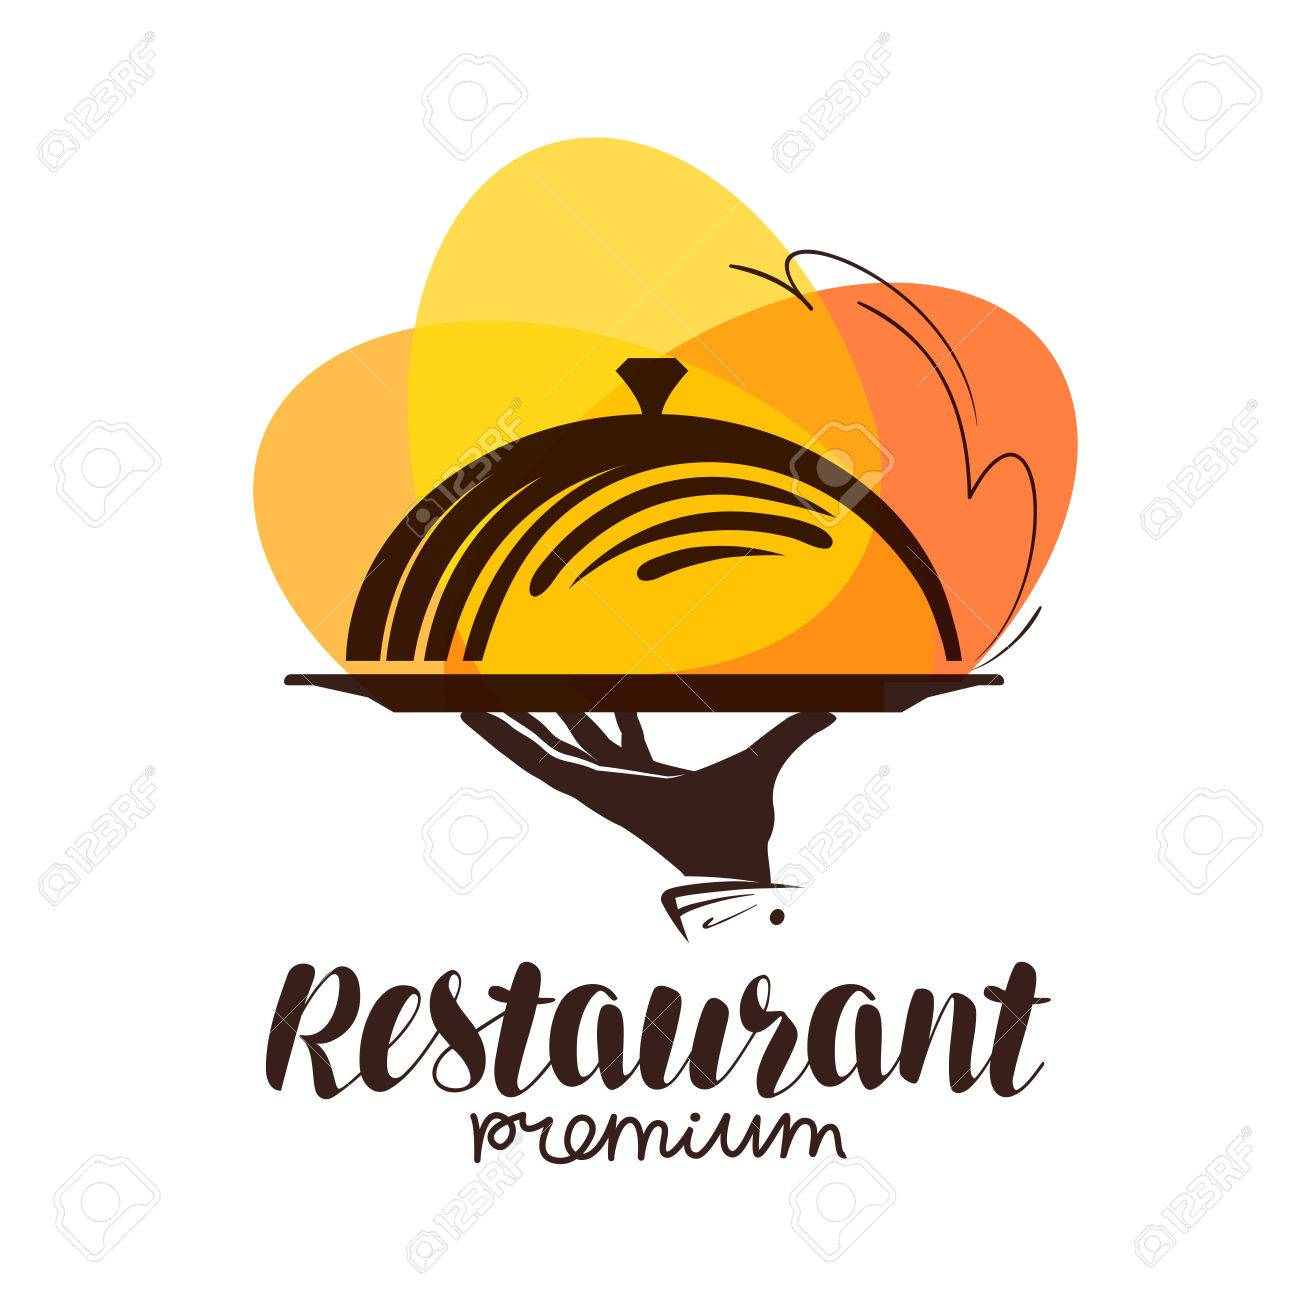 restaurant logo. icon or symbol for design menu eatery, canteen